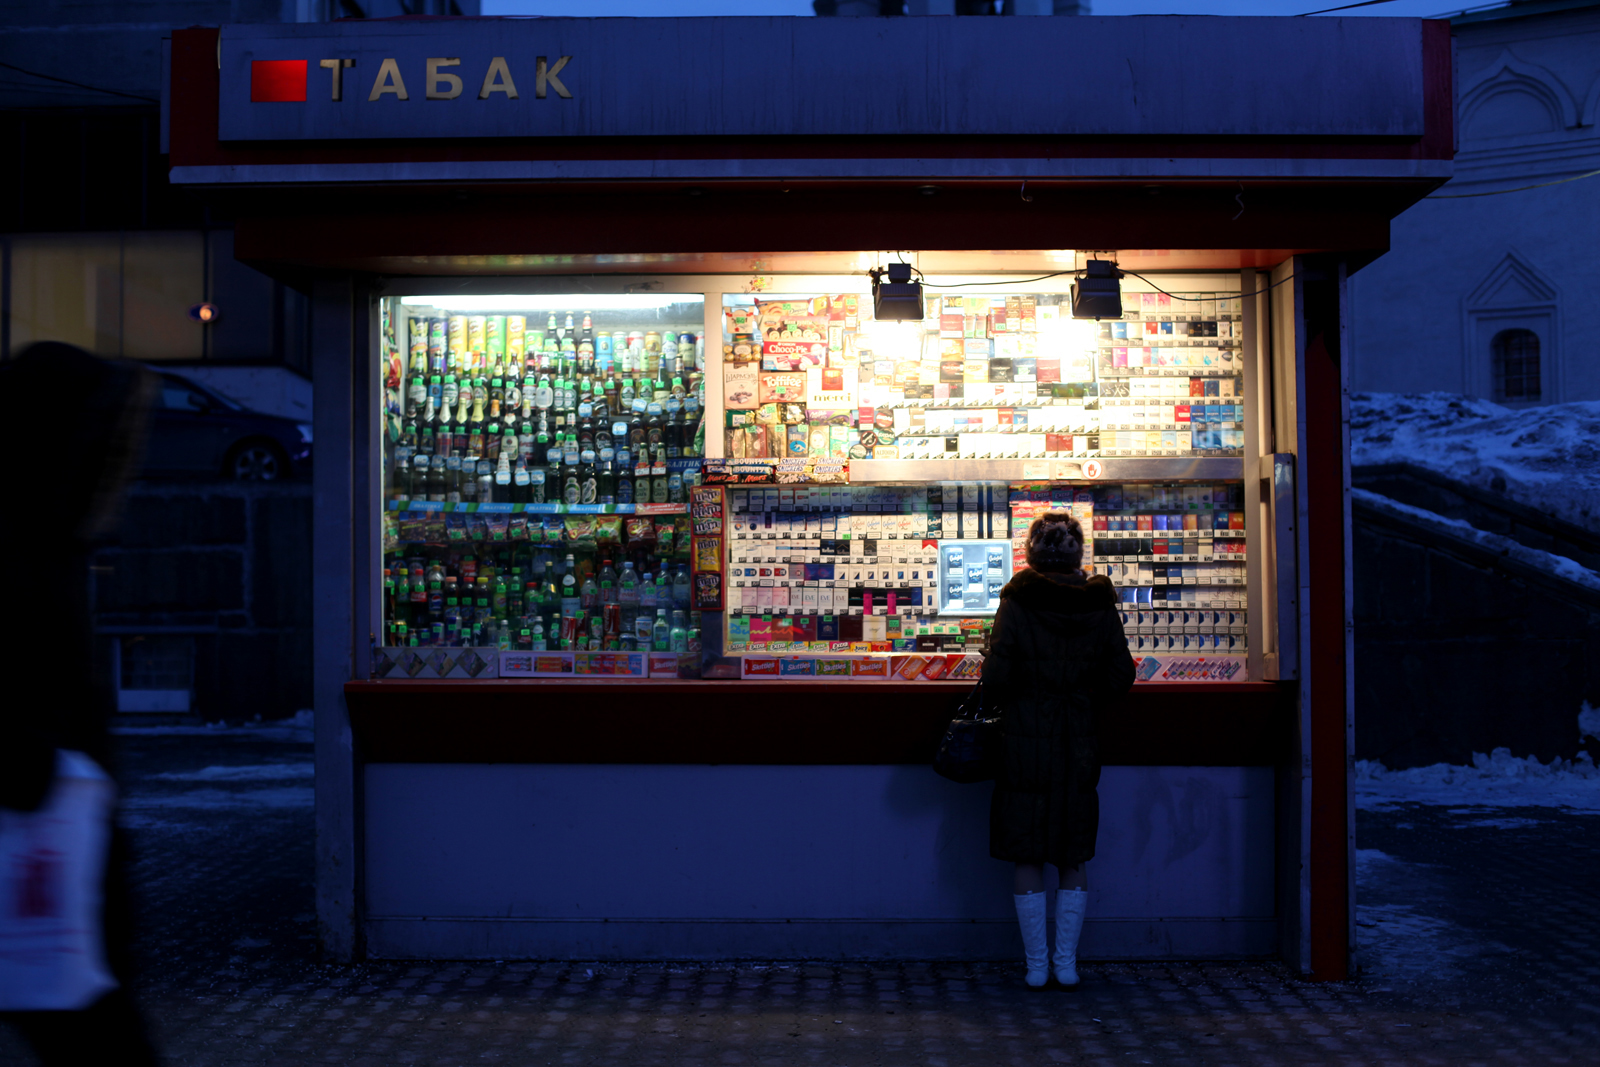 A sidewalk shop selling cigarettes, alcohol, and snacks, Moscow, Russia